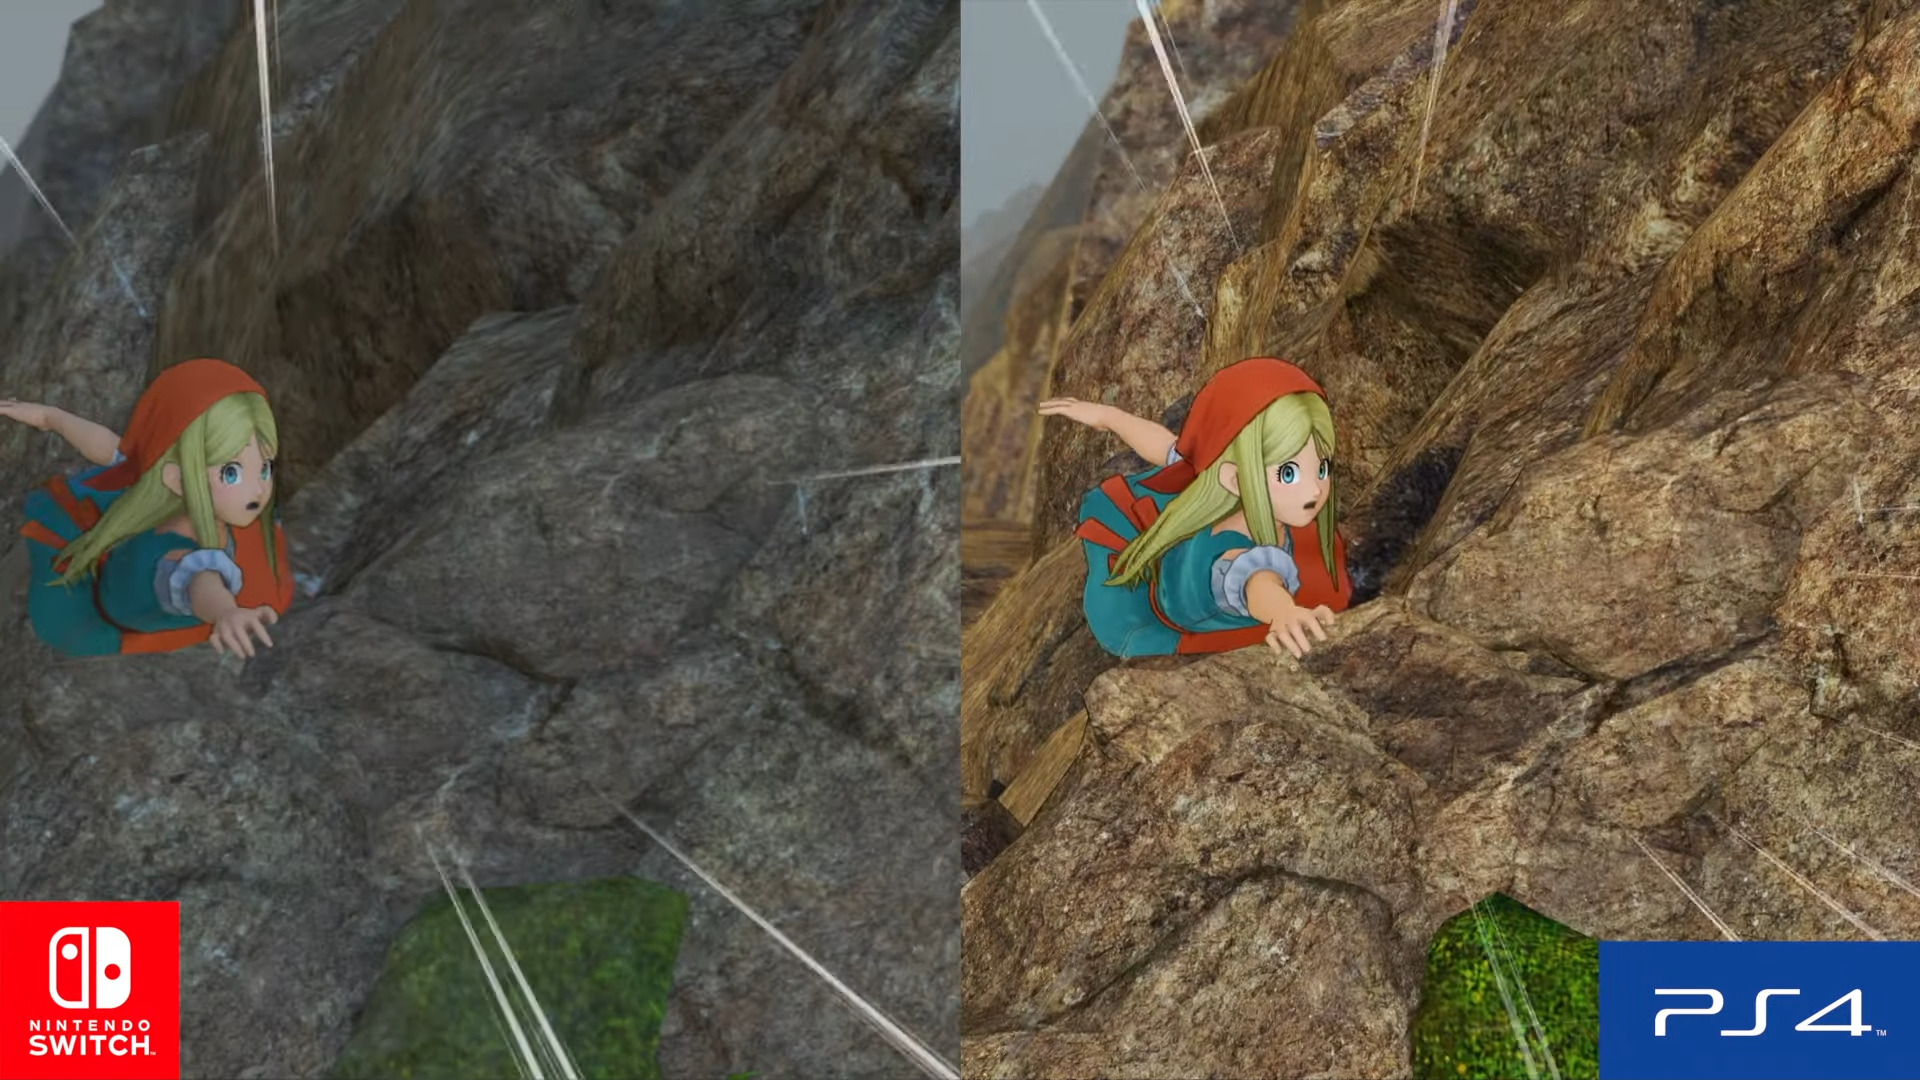 Dragon Quest 11 S Coming To Steam Is Based Off Of Nintendo Switch Port Bringing Iffy Textures